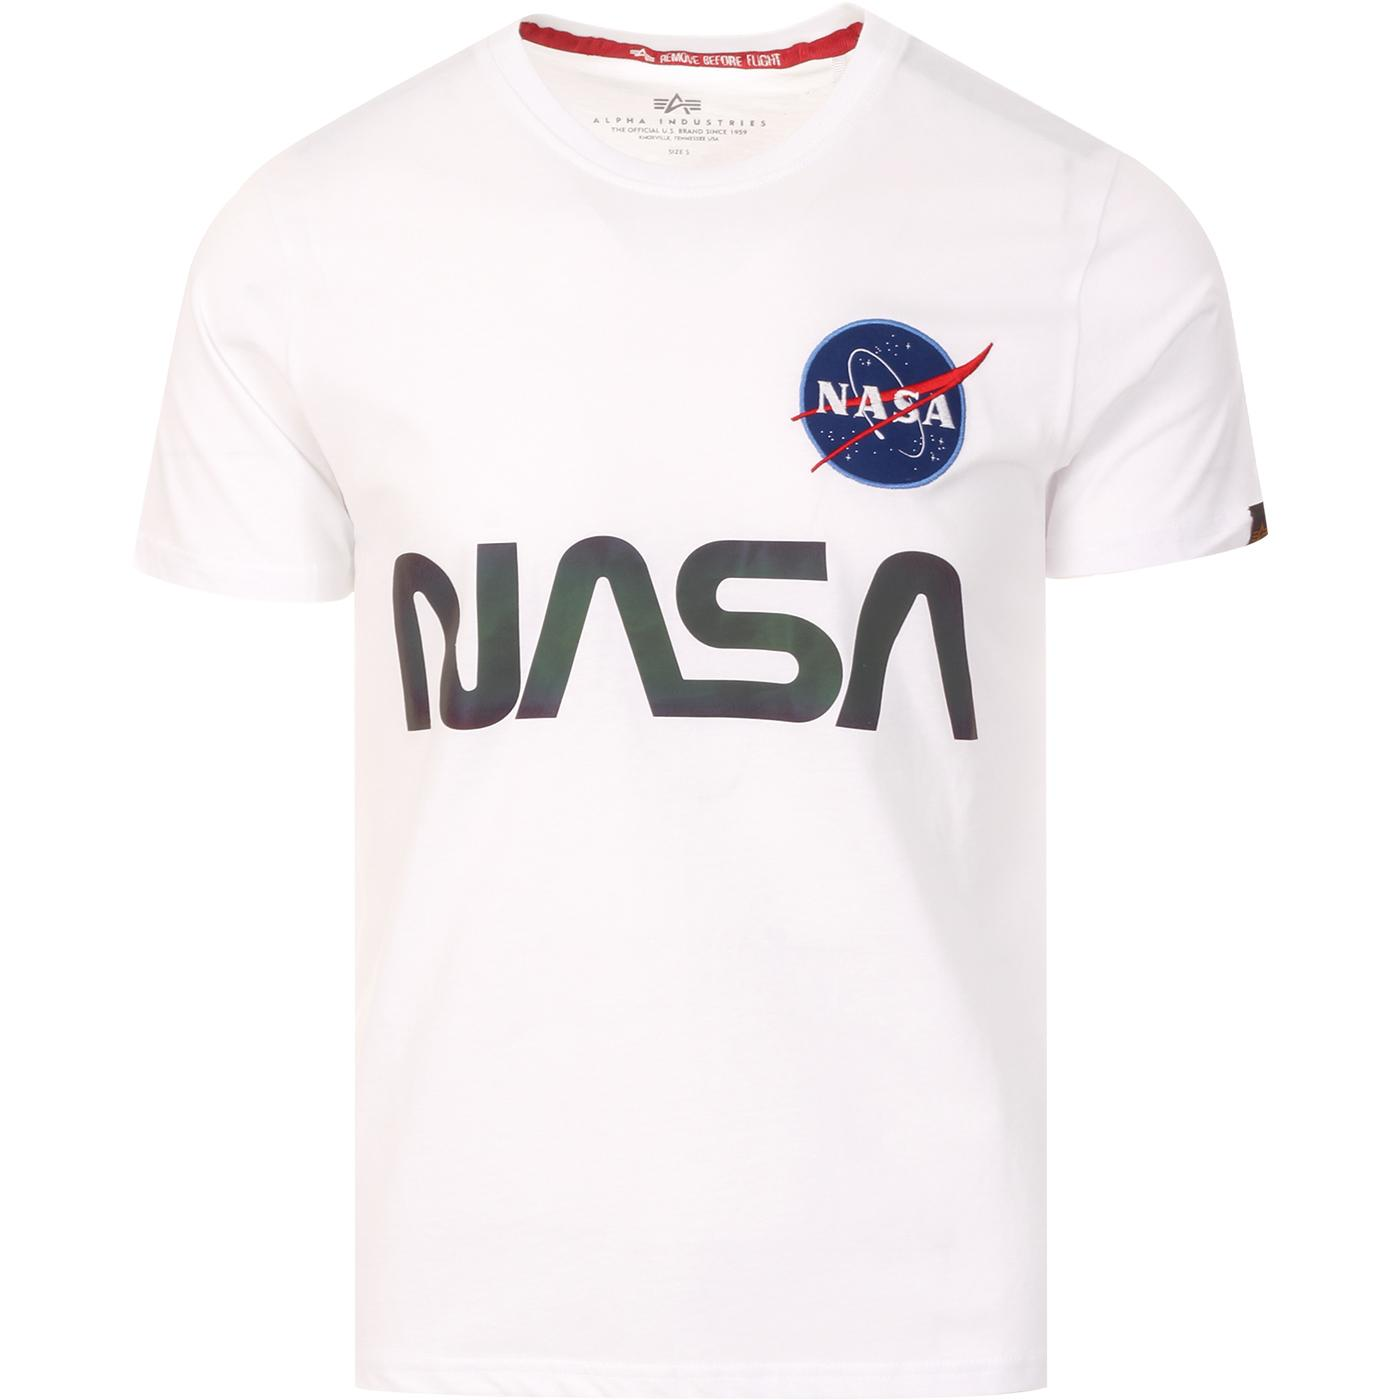 ALPHA INDUSTRIES X NASA Rainbow Ref. Tee (White)